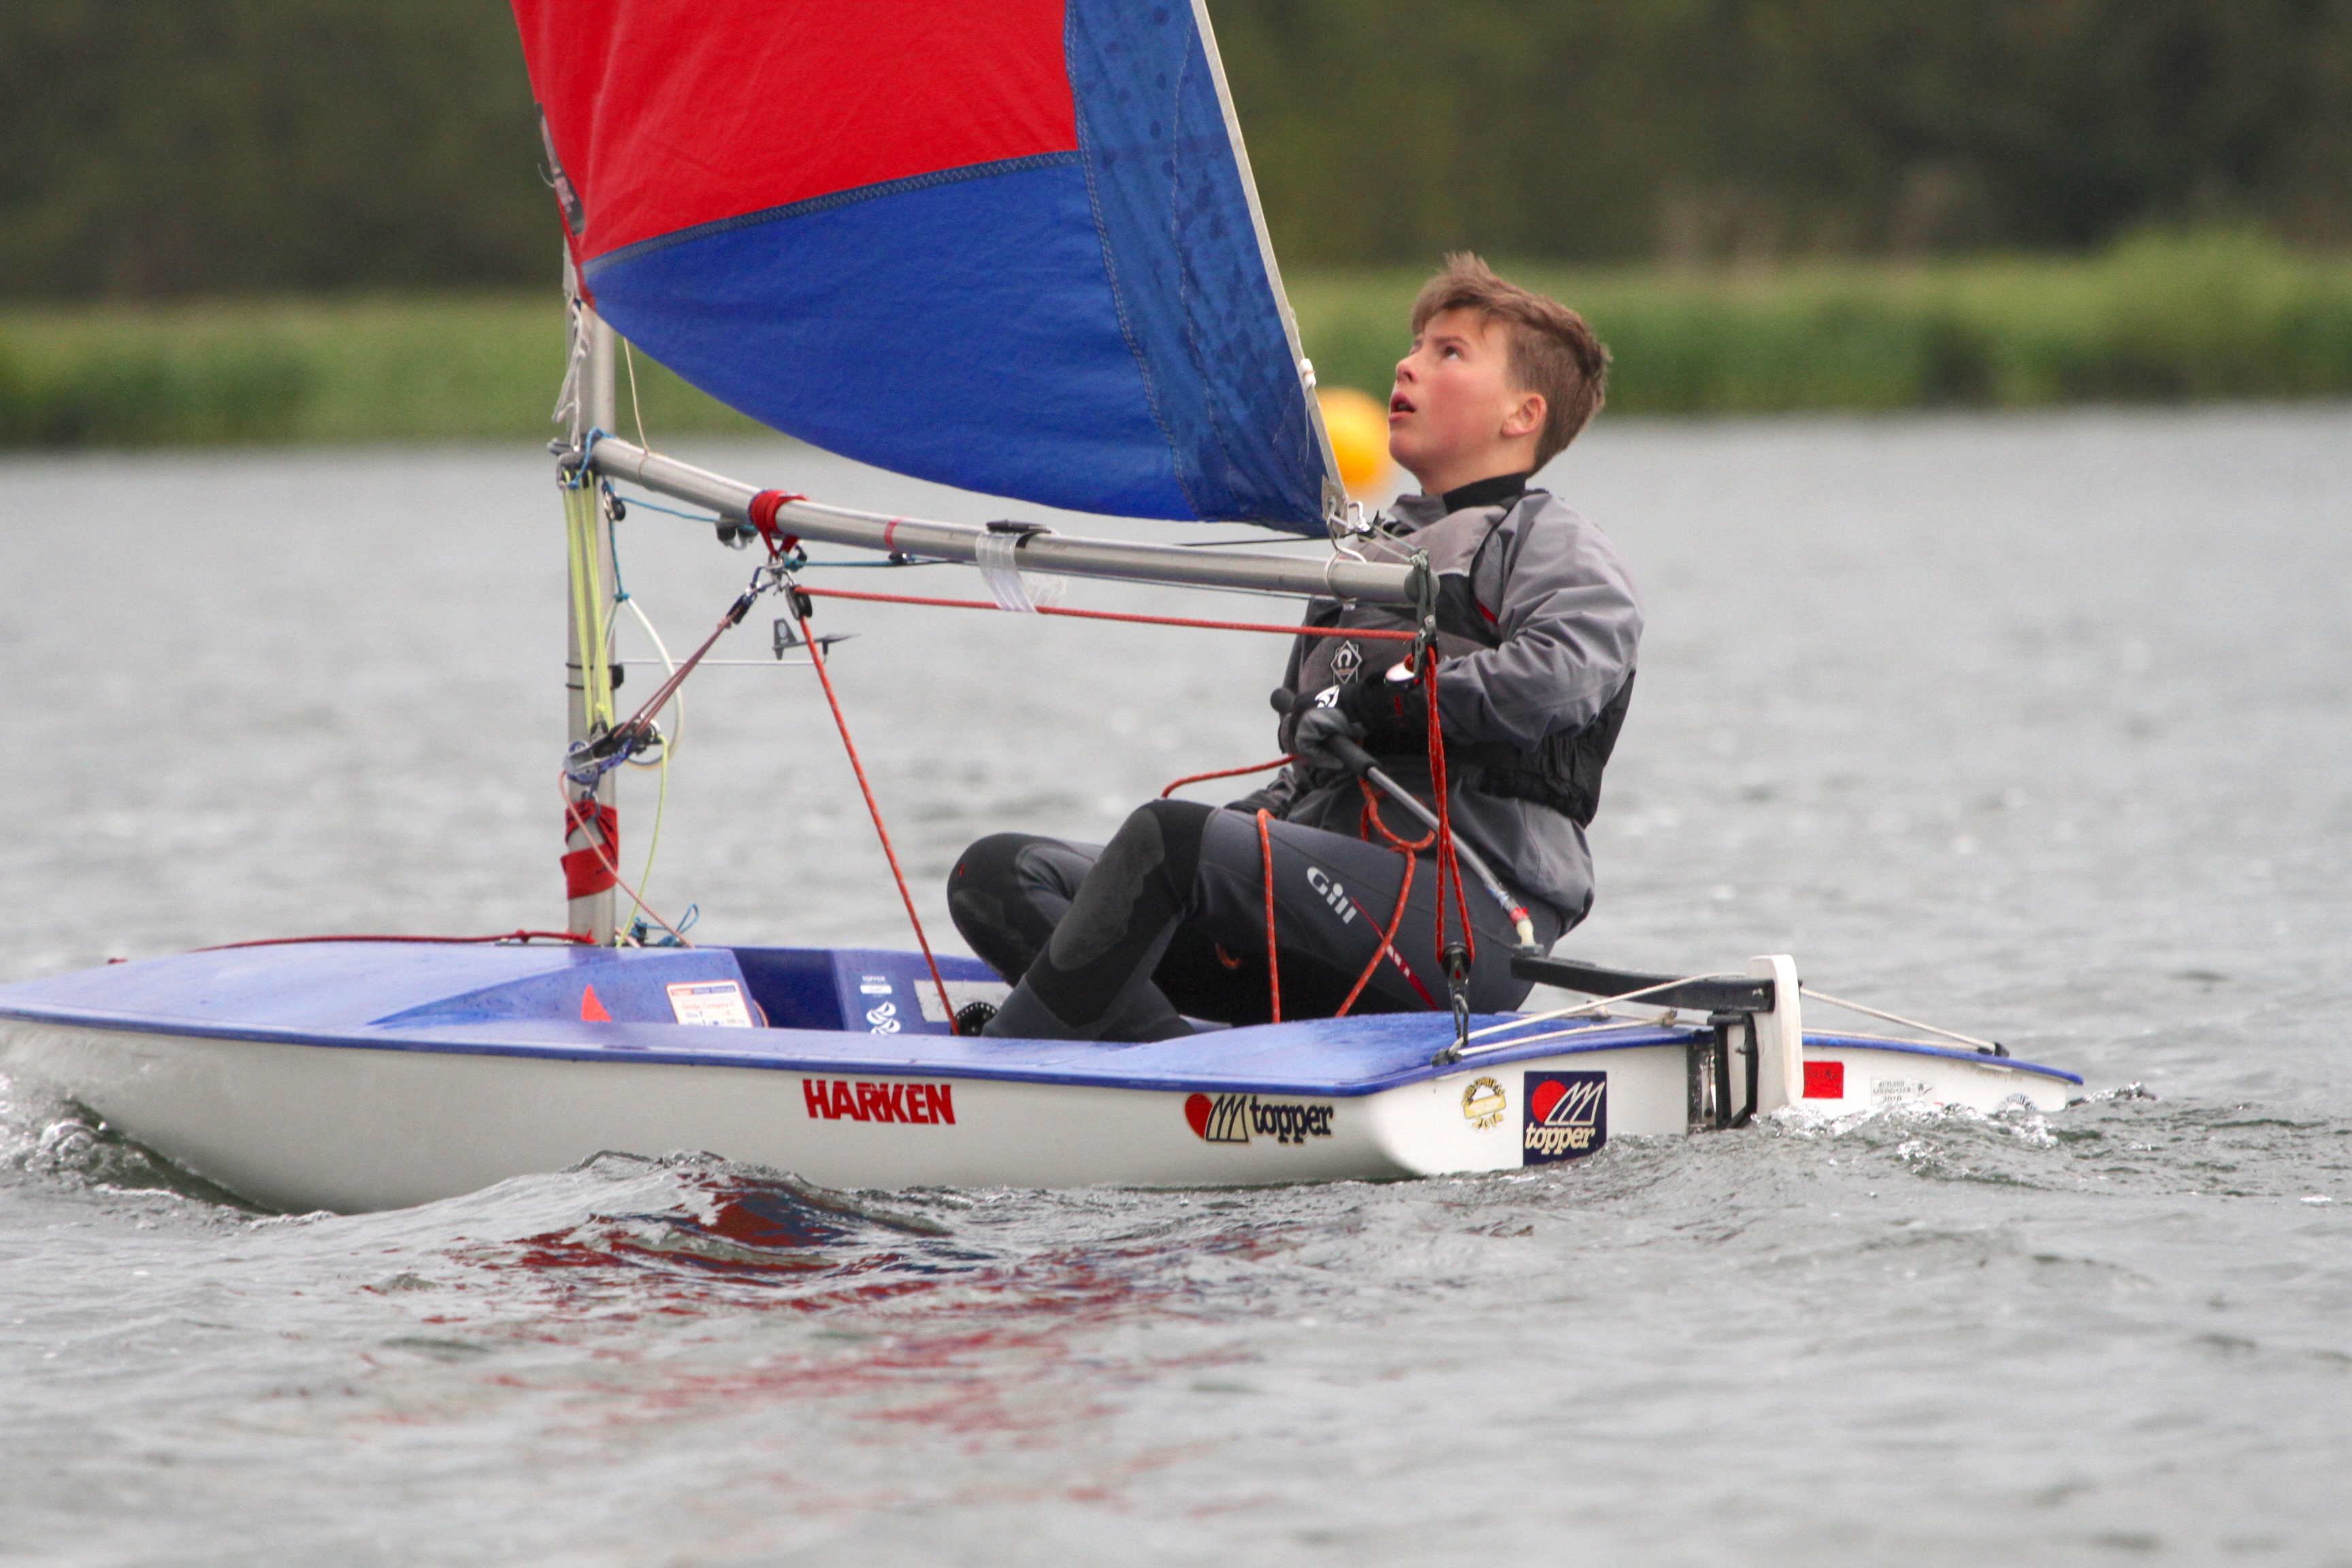 South Staffs Sailing Club Lands National Youth Excellence Award